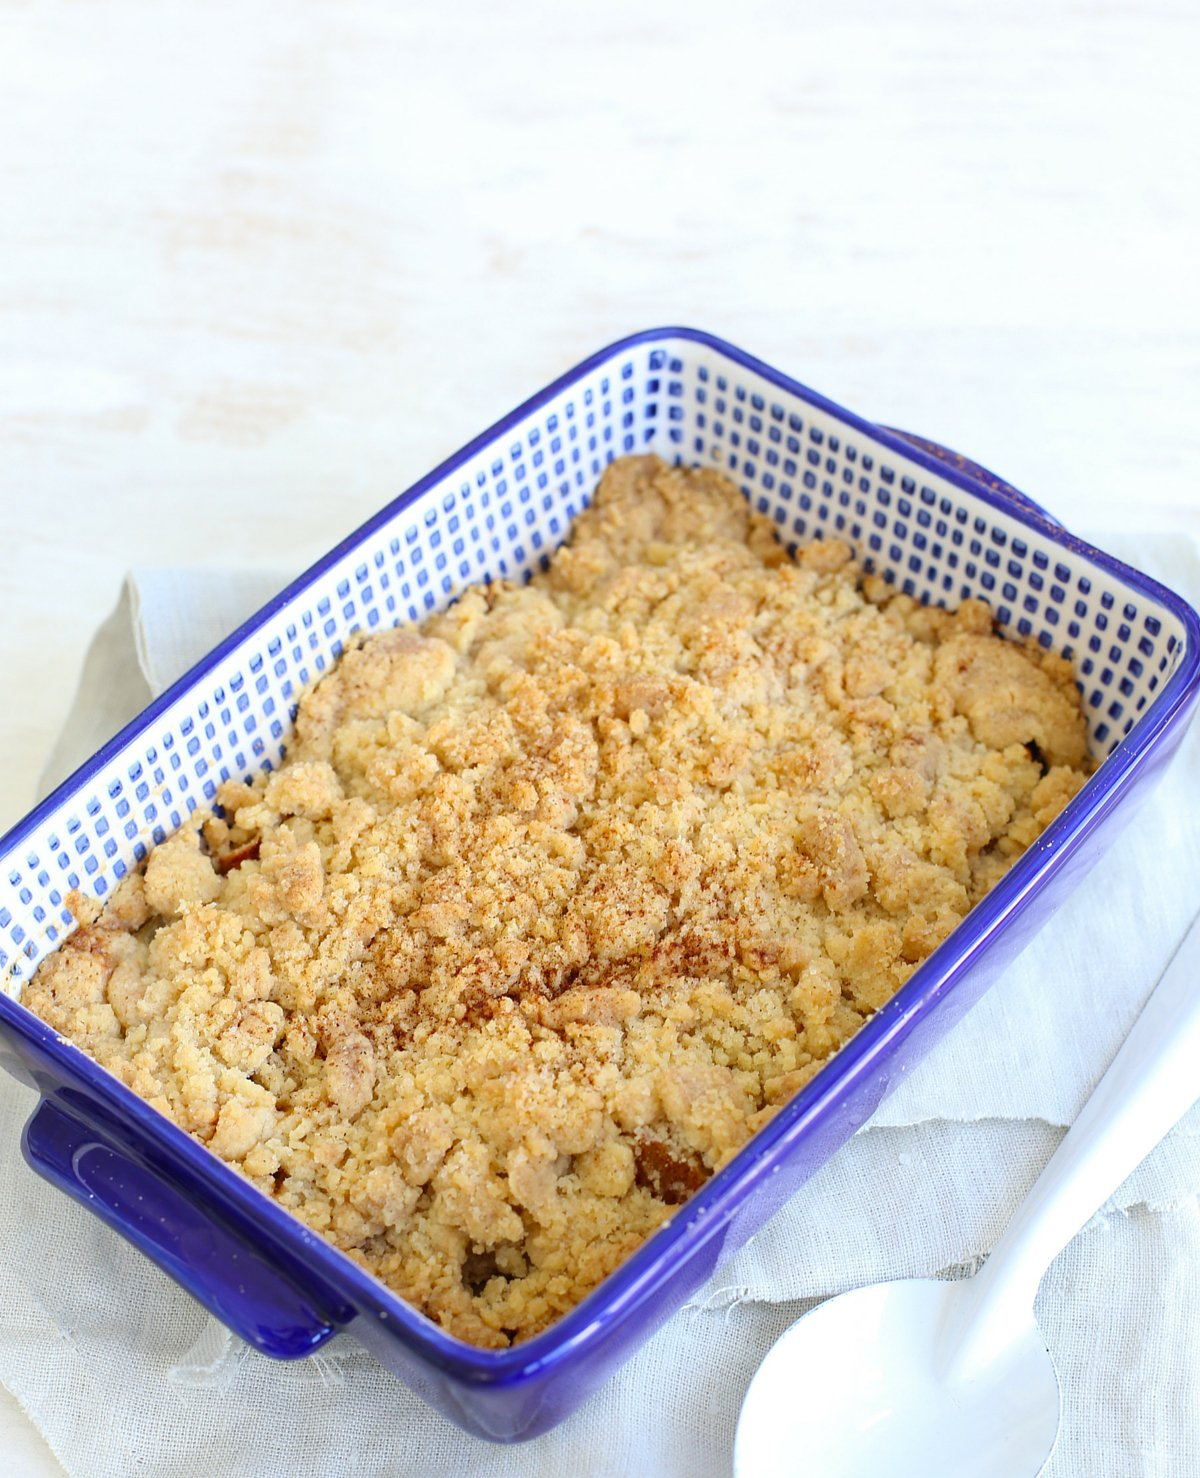 Appel-ananas crumble